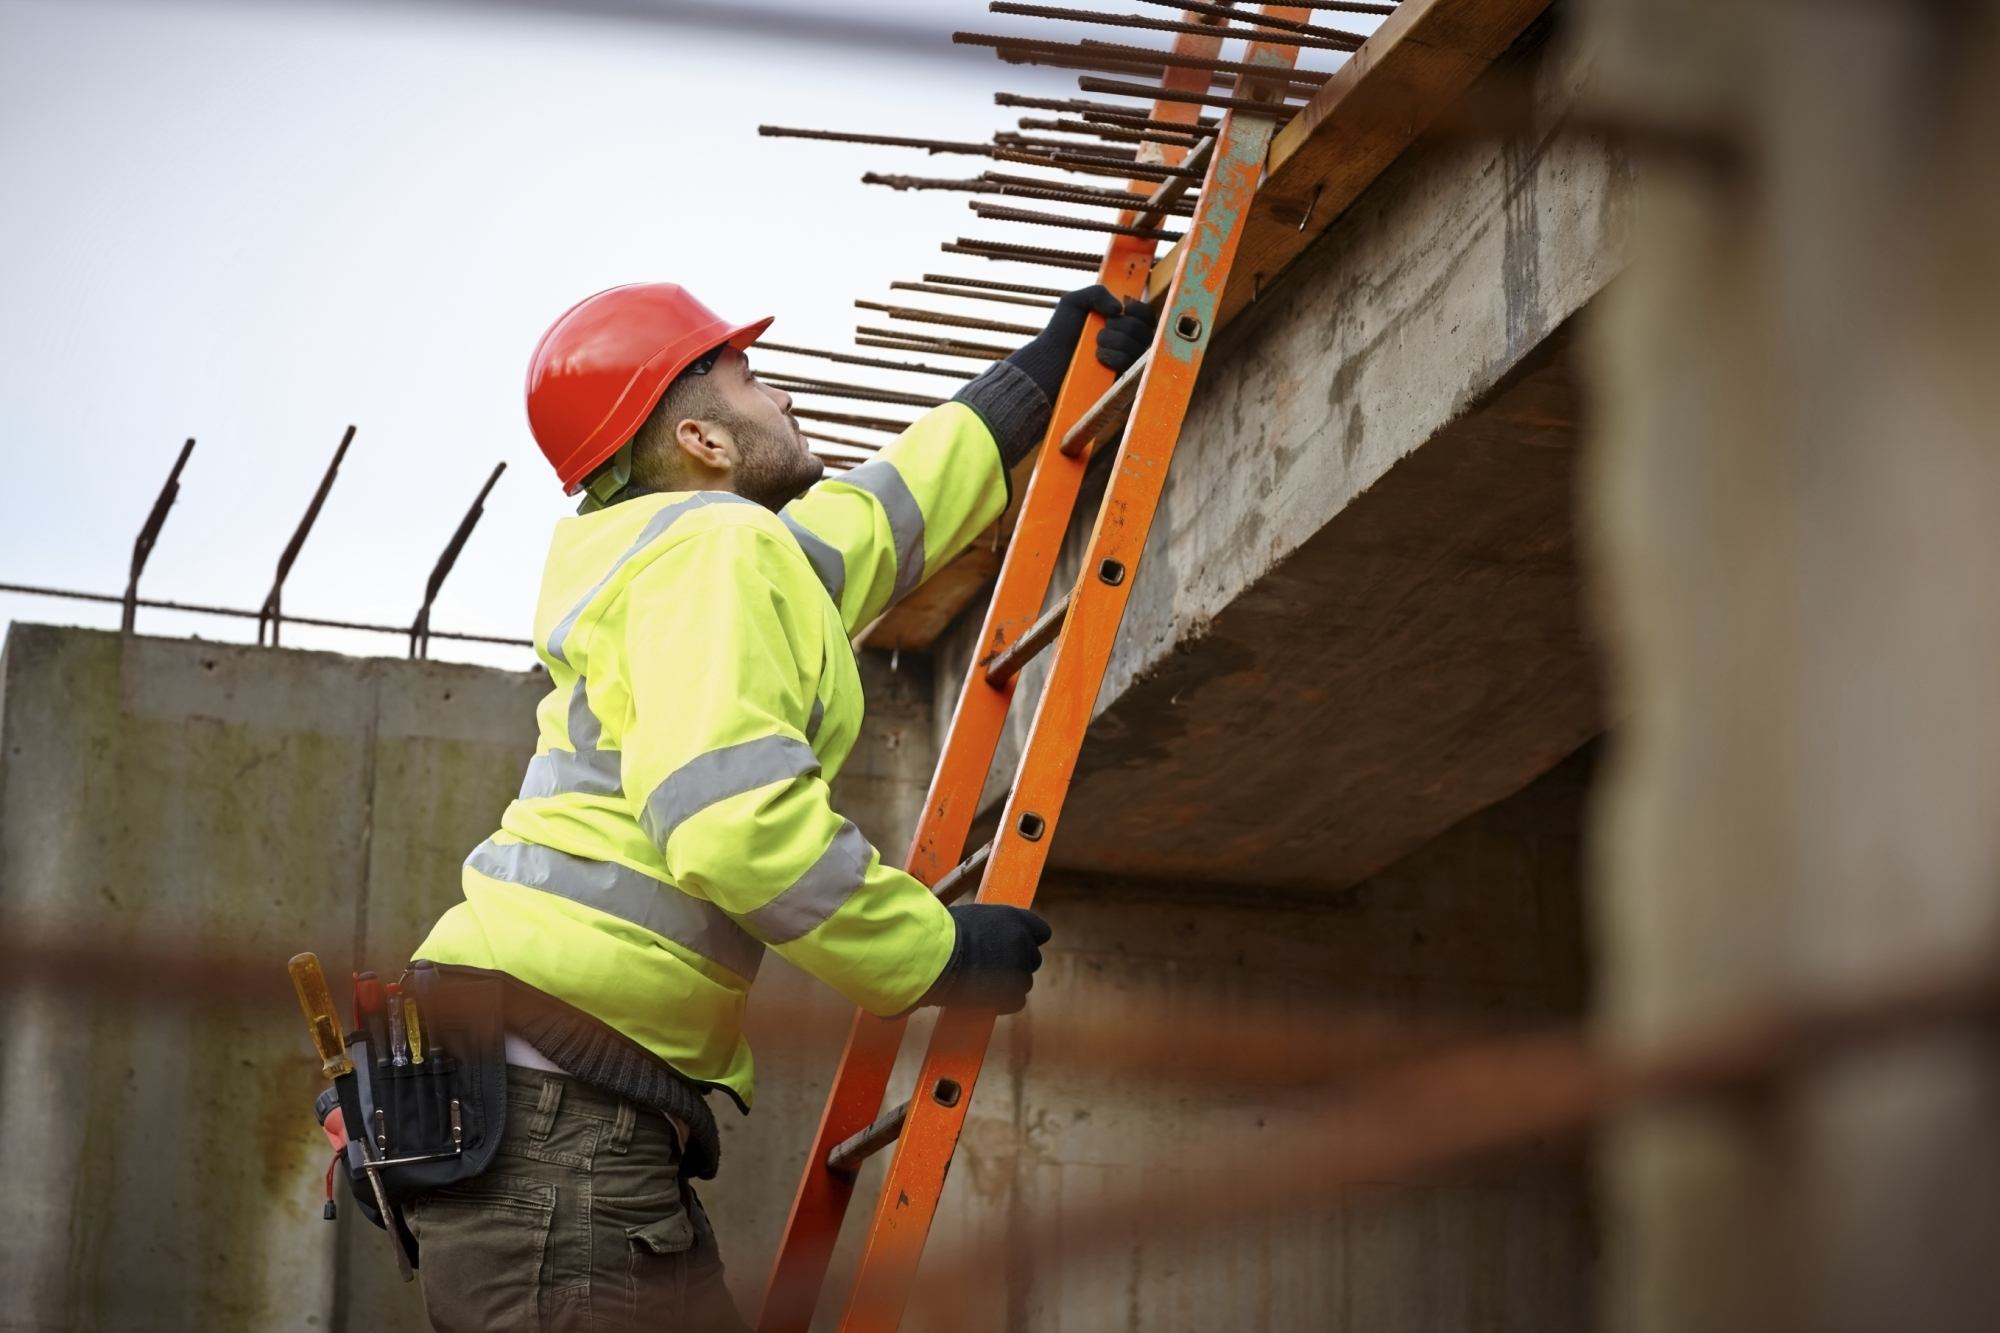 Third parties may be found liable in construction accident injuries